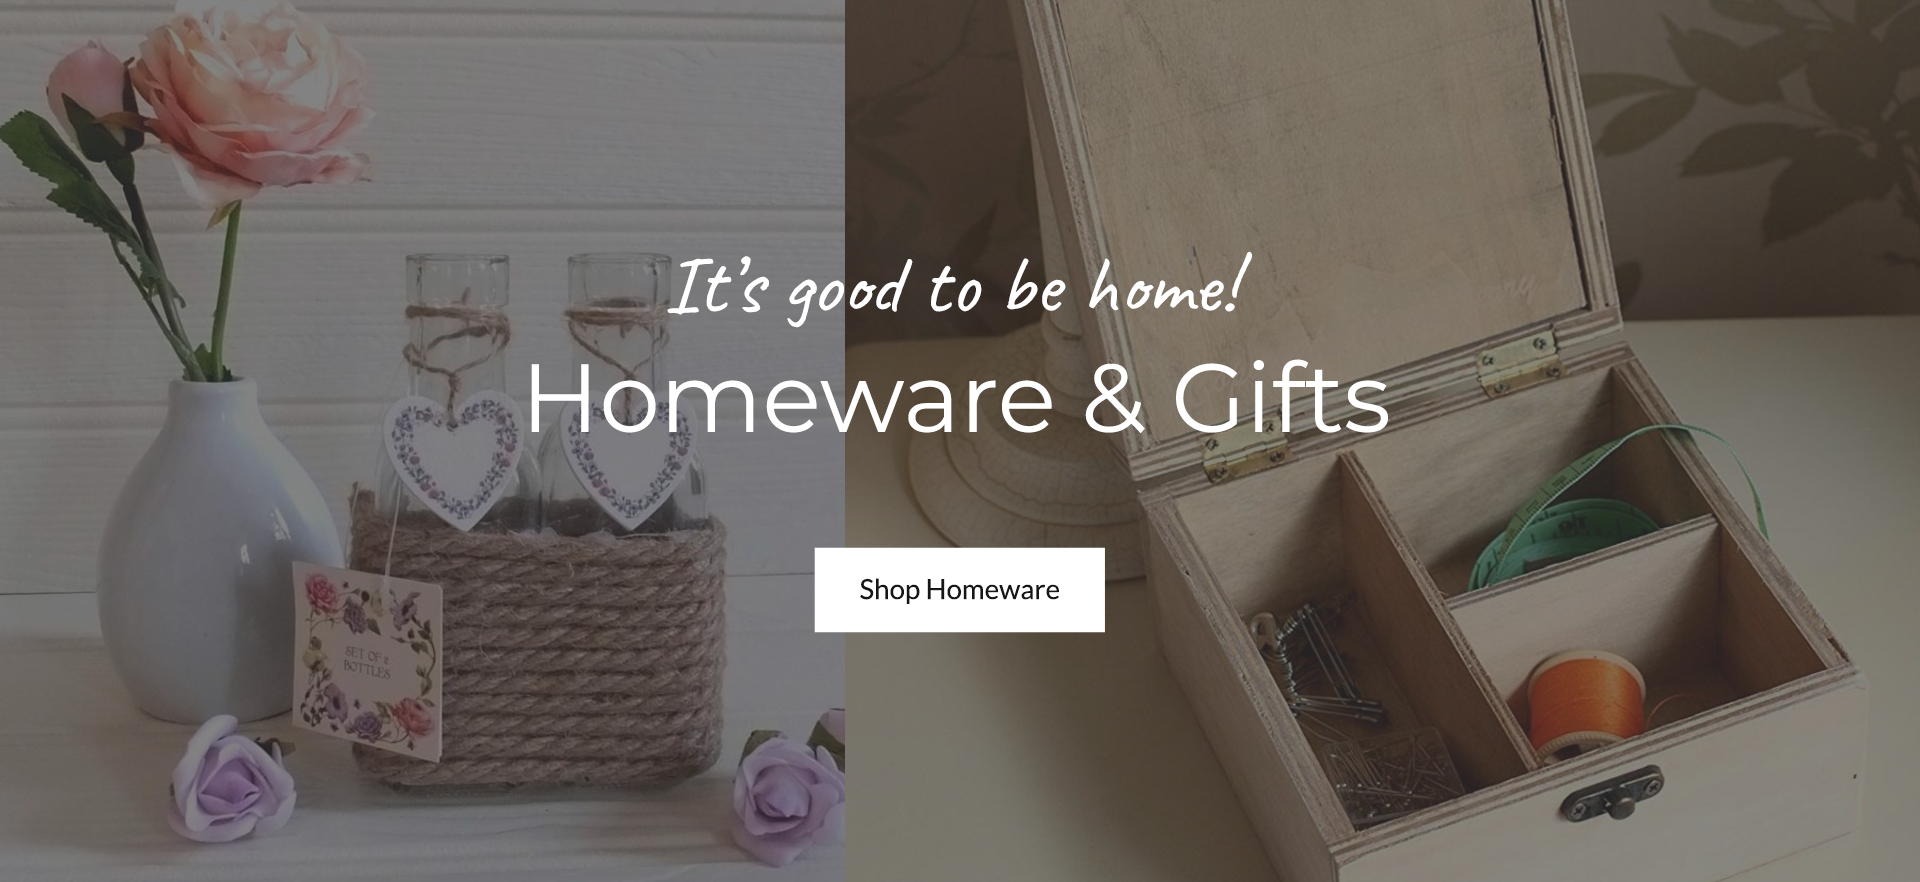 Shop Homeware & Gifts